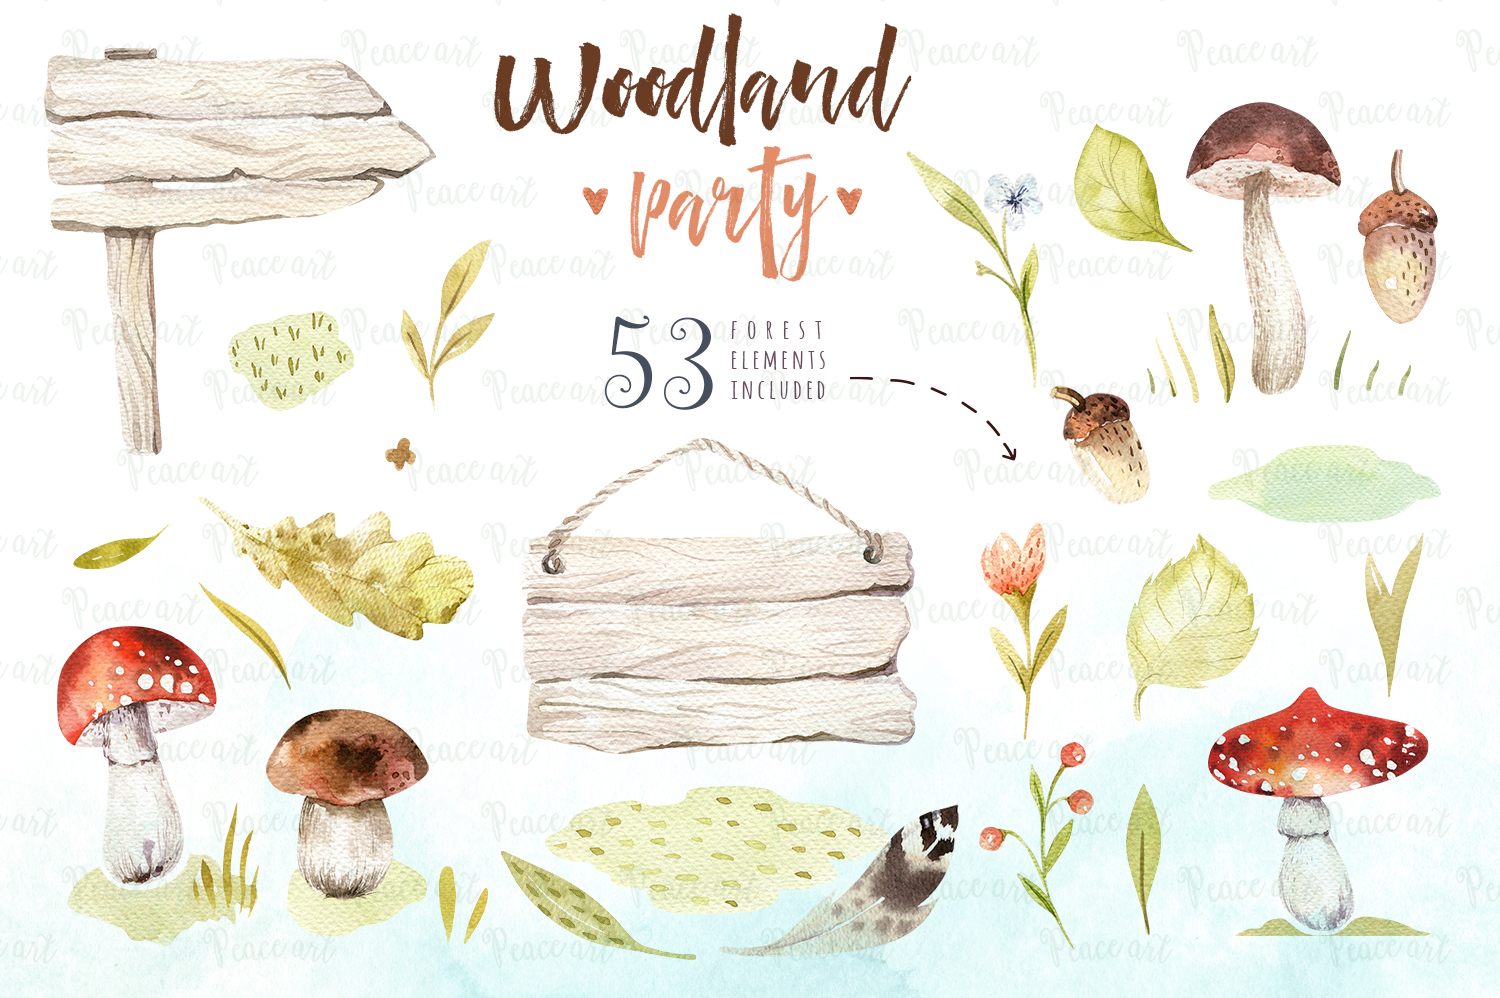 Woodland party I example image 5